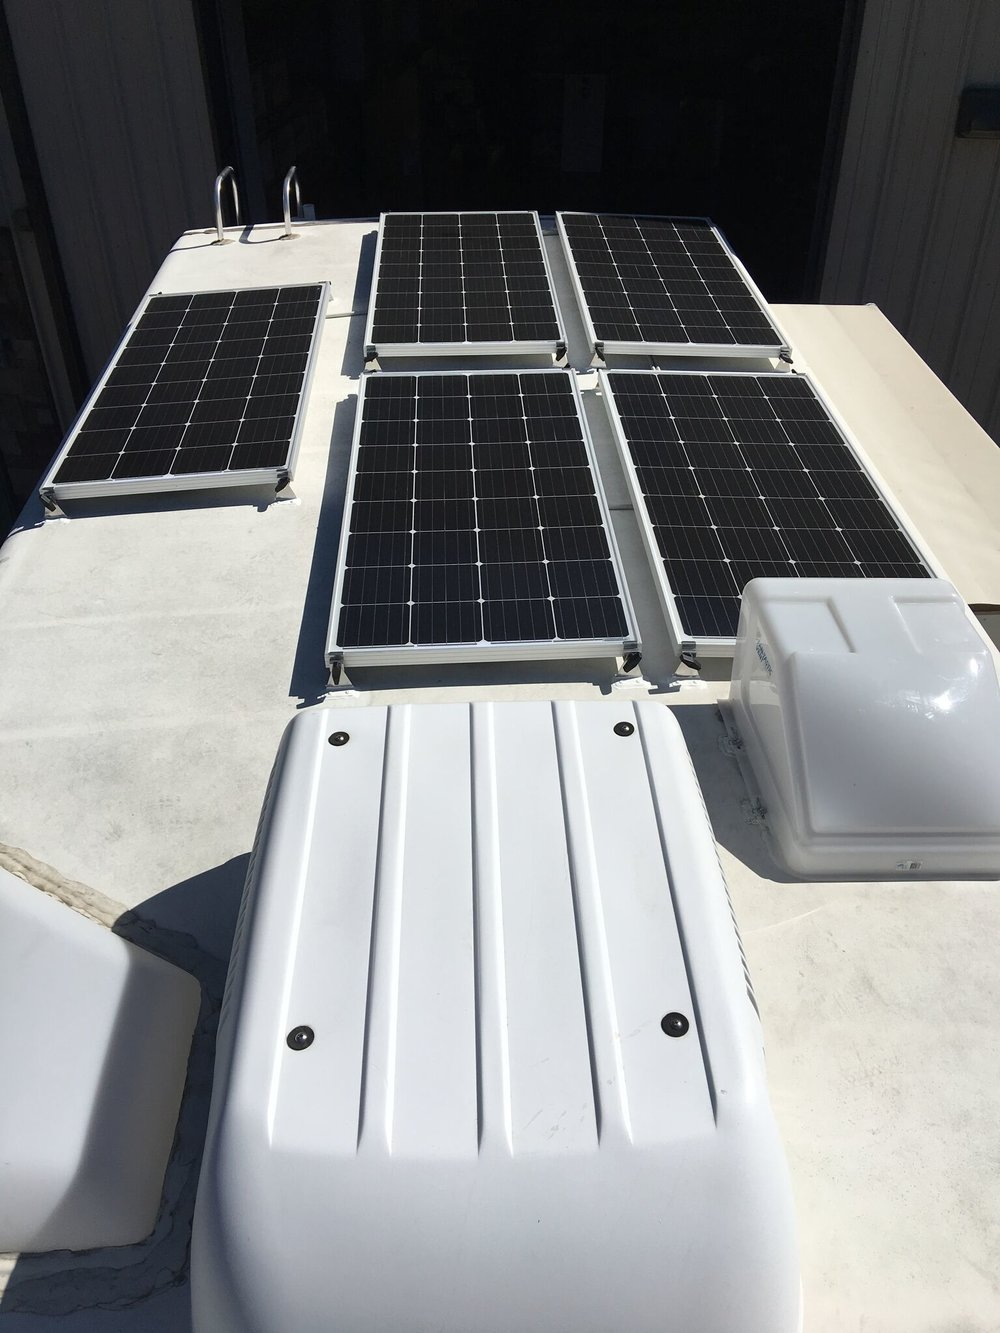 Equipment Added:  5x SF180 Solar Panel Kits 1x Roof Combiner Box 1x Victron BlueSolar Smart MPPT 100A Charge Controller Core 1x 3000VA Victron MultiPlus Inverter Kit 1x Color Control Monitor 4x 400Ah AGM GPL L16s 6V Batteries 1x Easy Start